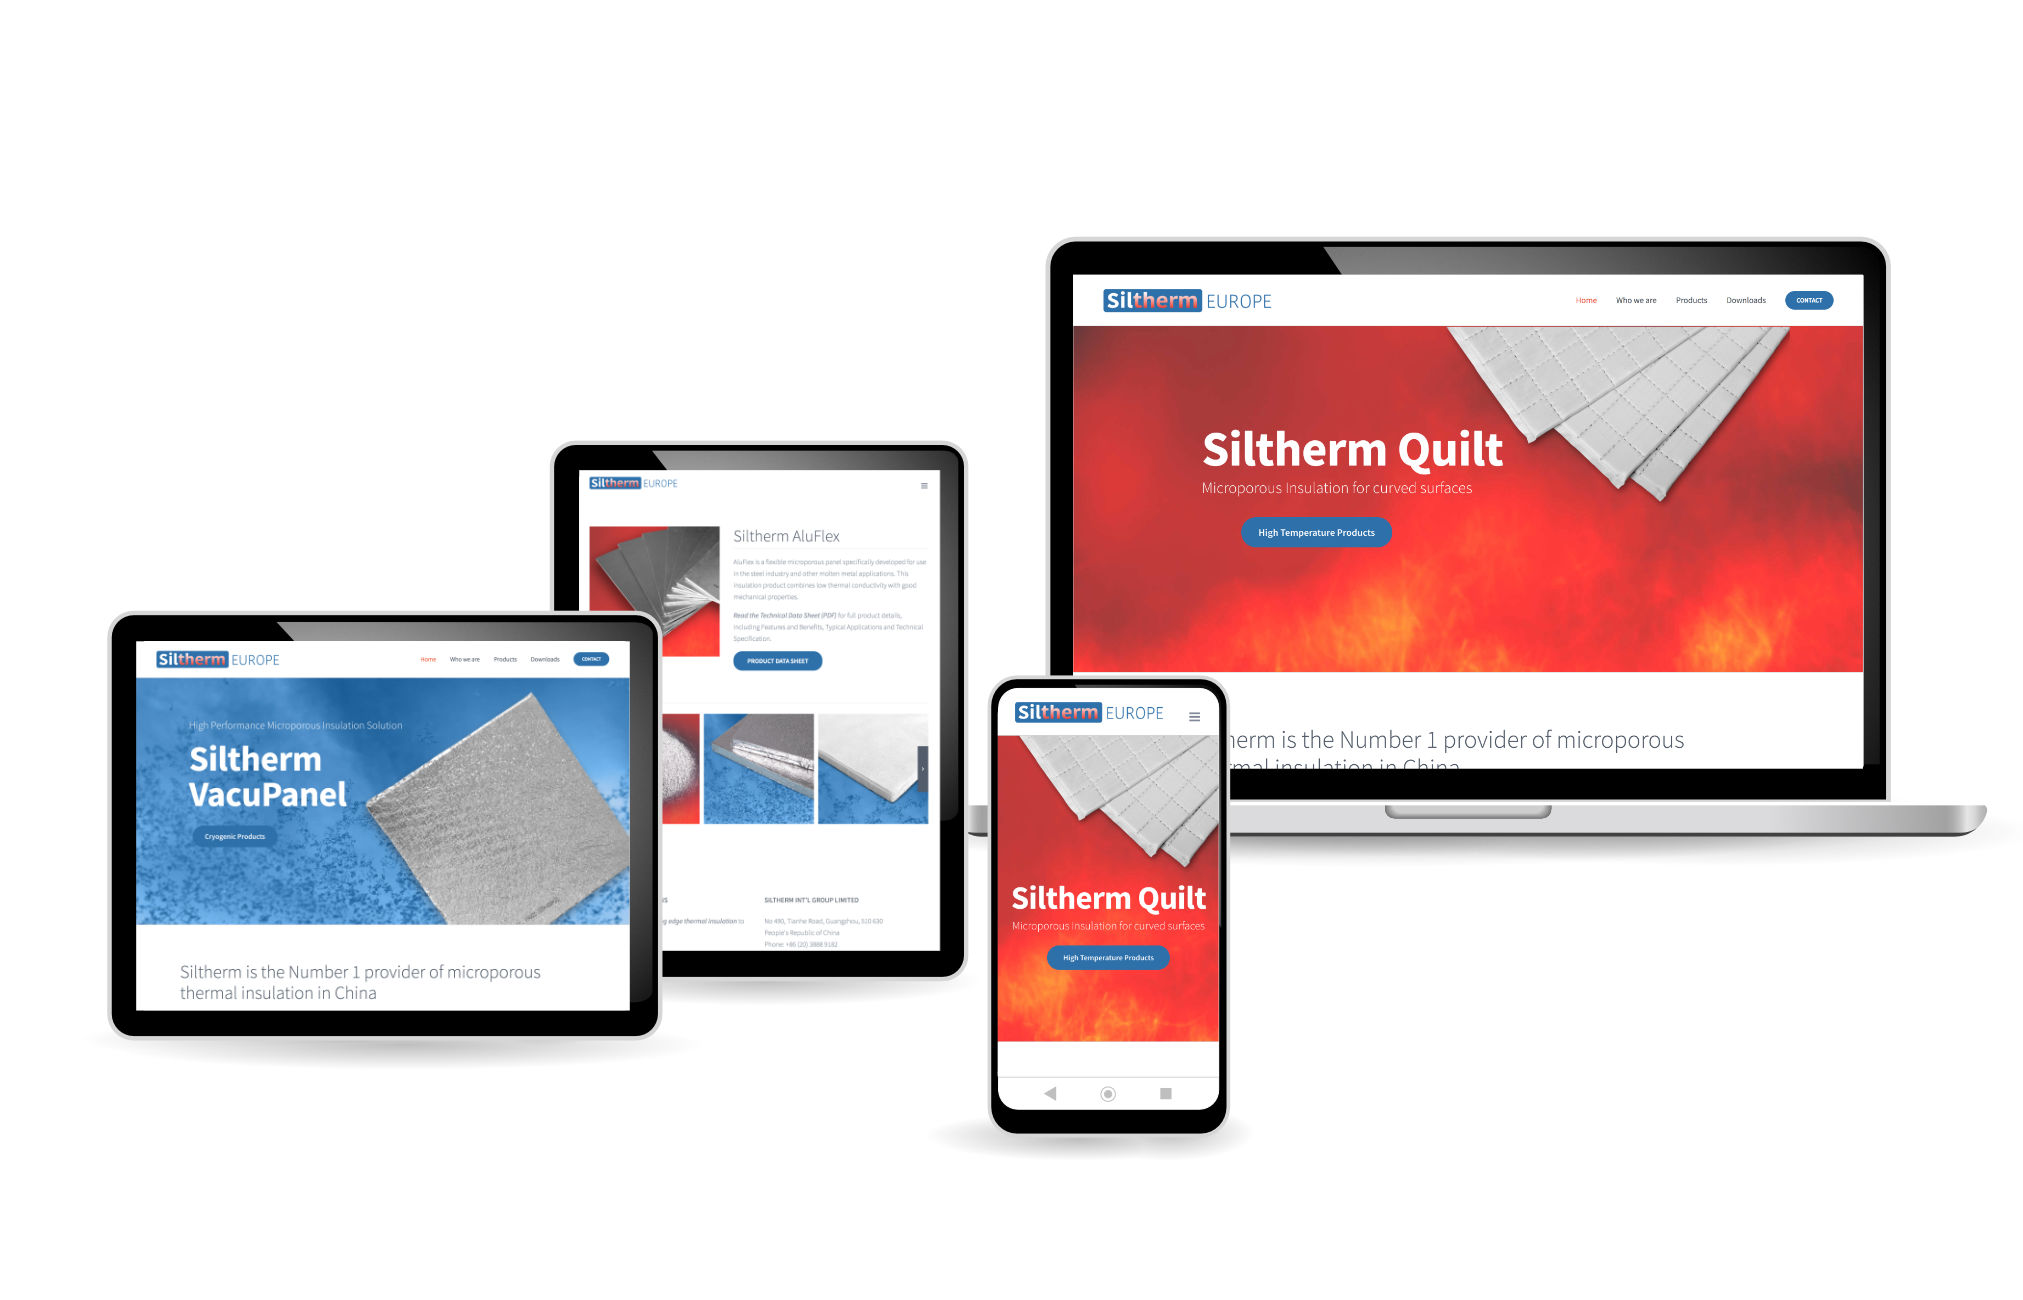 Siltherm Europe Web Design, Wordpress Website produced by Orangebox Digital